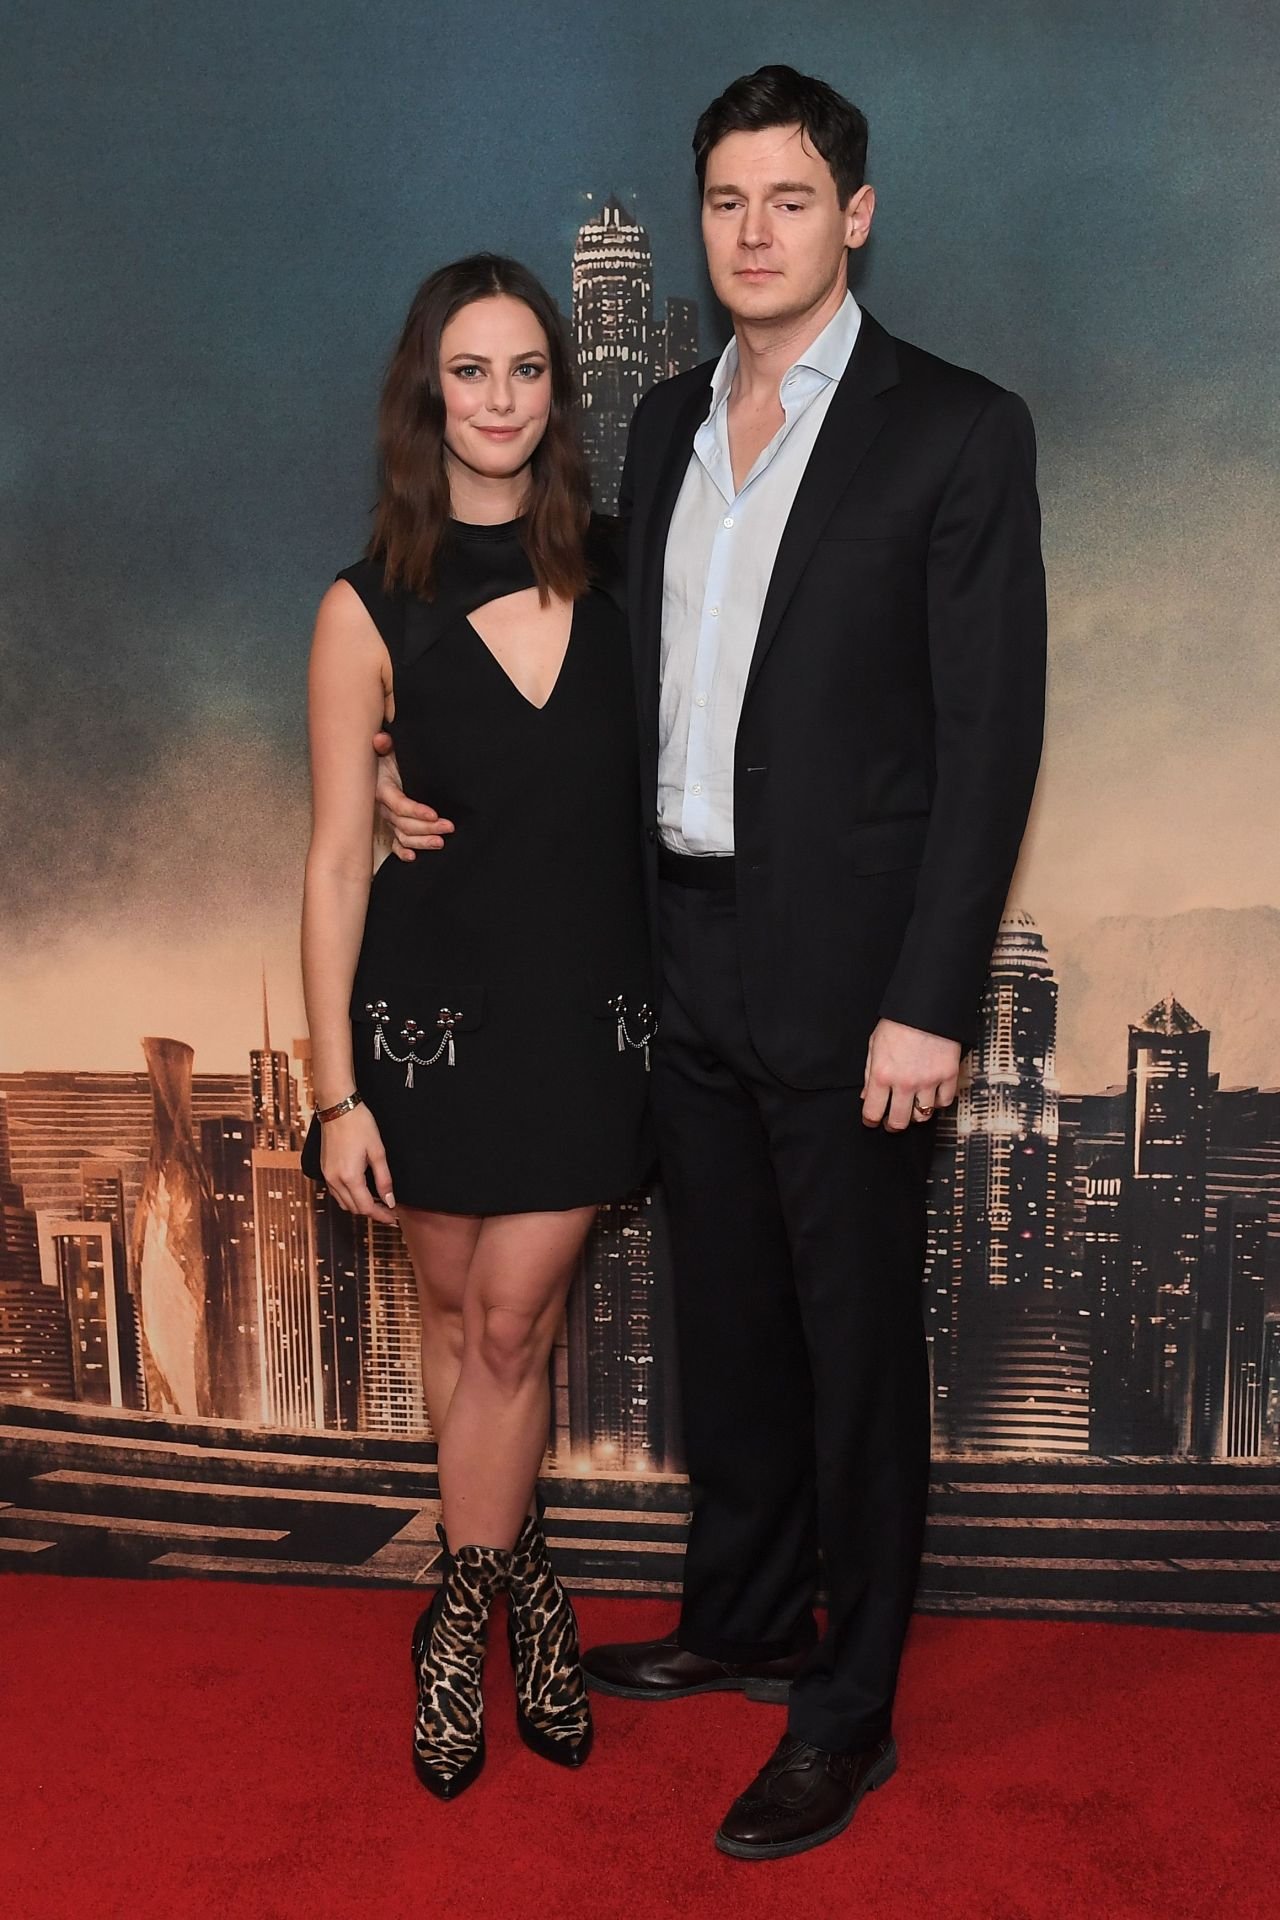 http://celebmafia.com/wp-content/uploads/2018/01/kaya-scodelario-maze-runner-the-death-cure-red-carpet-in-london-5.jpg